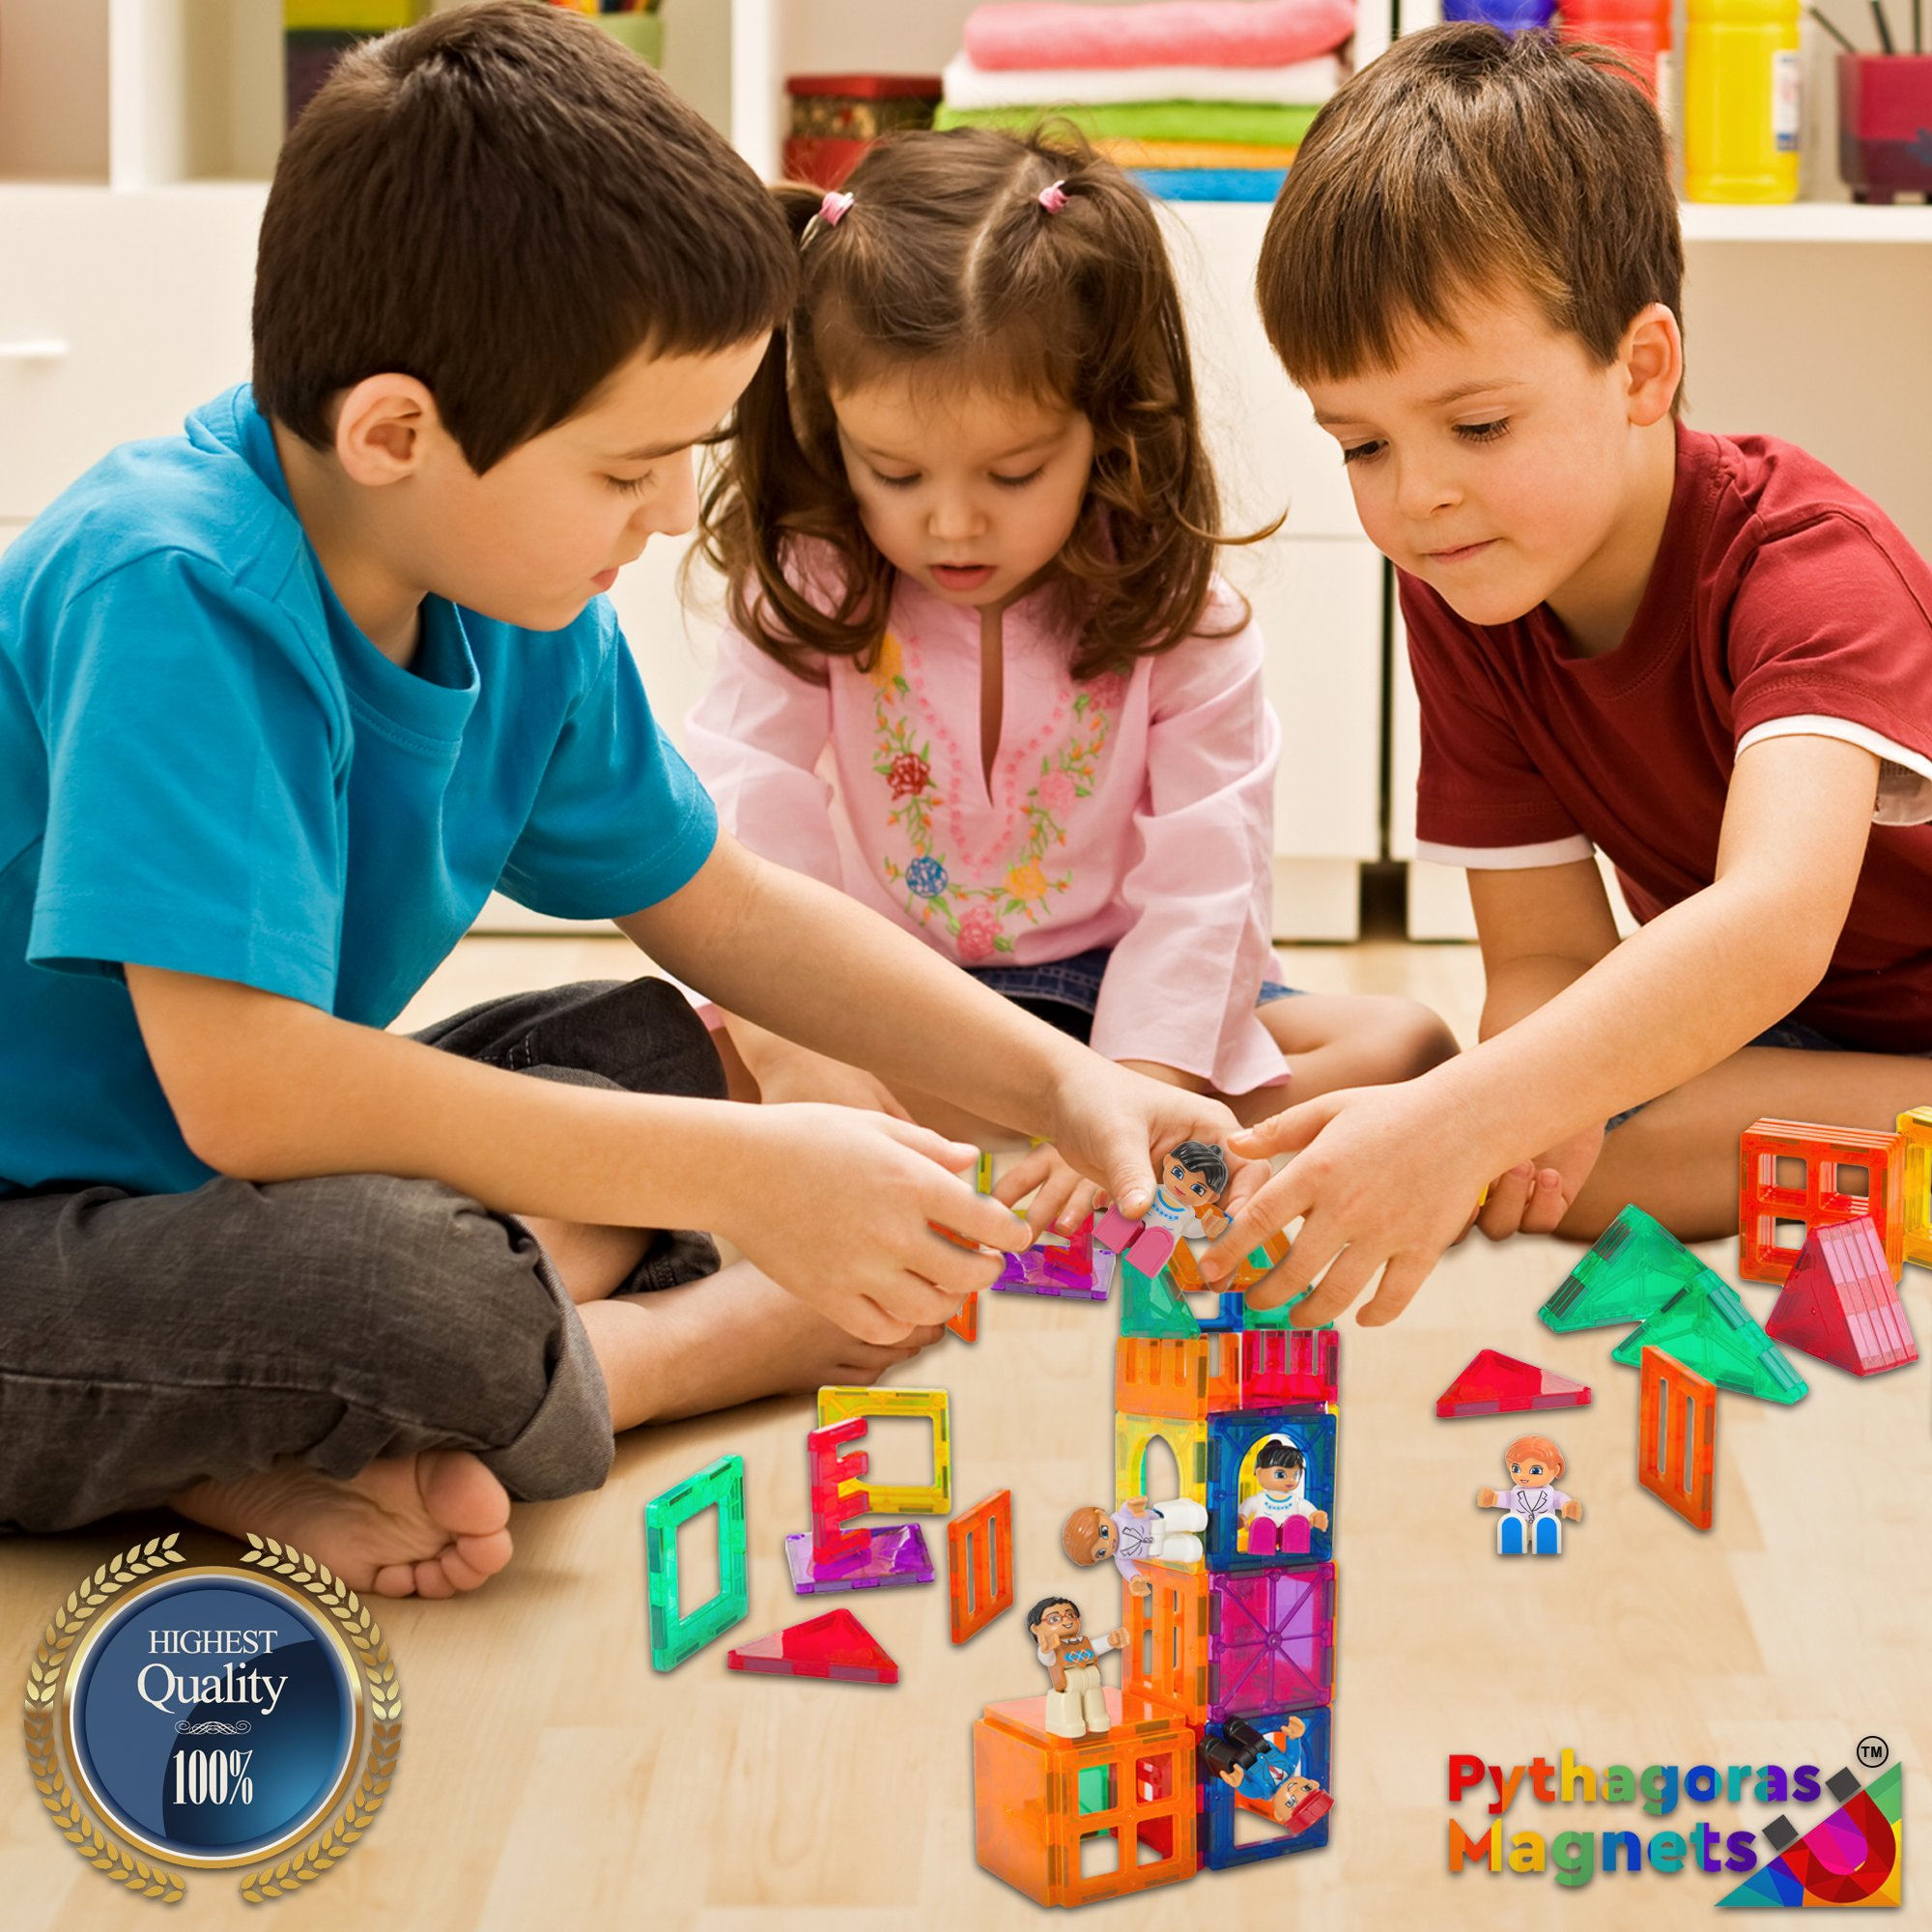 Magnetic Figures Set of 4 - Community Toy People Magnetic Tiles Expansion Pack for Boys and Girls - Pilot, Teacher, Lawyer, Coach Educational STEM Toys Add on Sets for Magnetic Blocks by Pythagoras Magnets (Image #5)